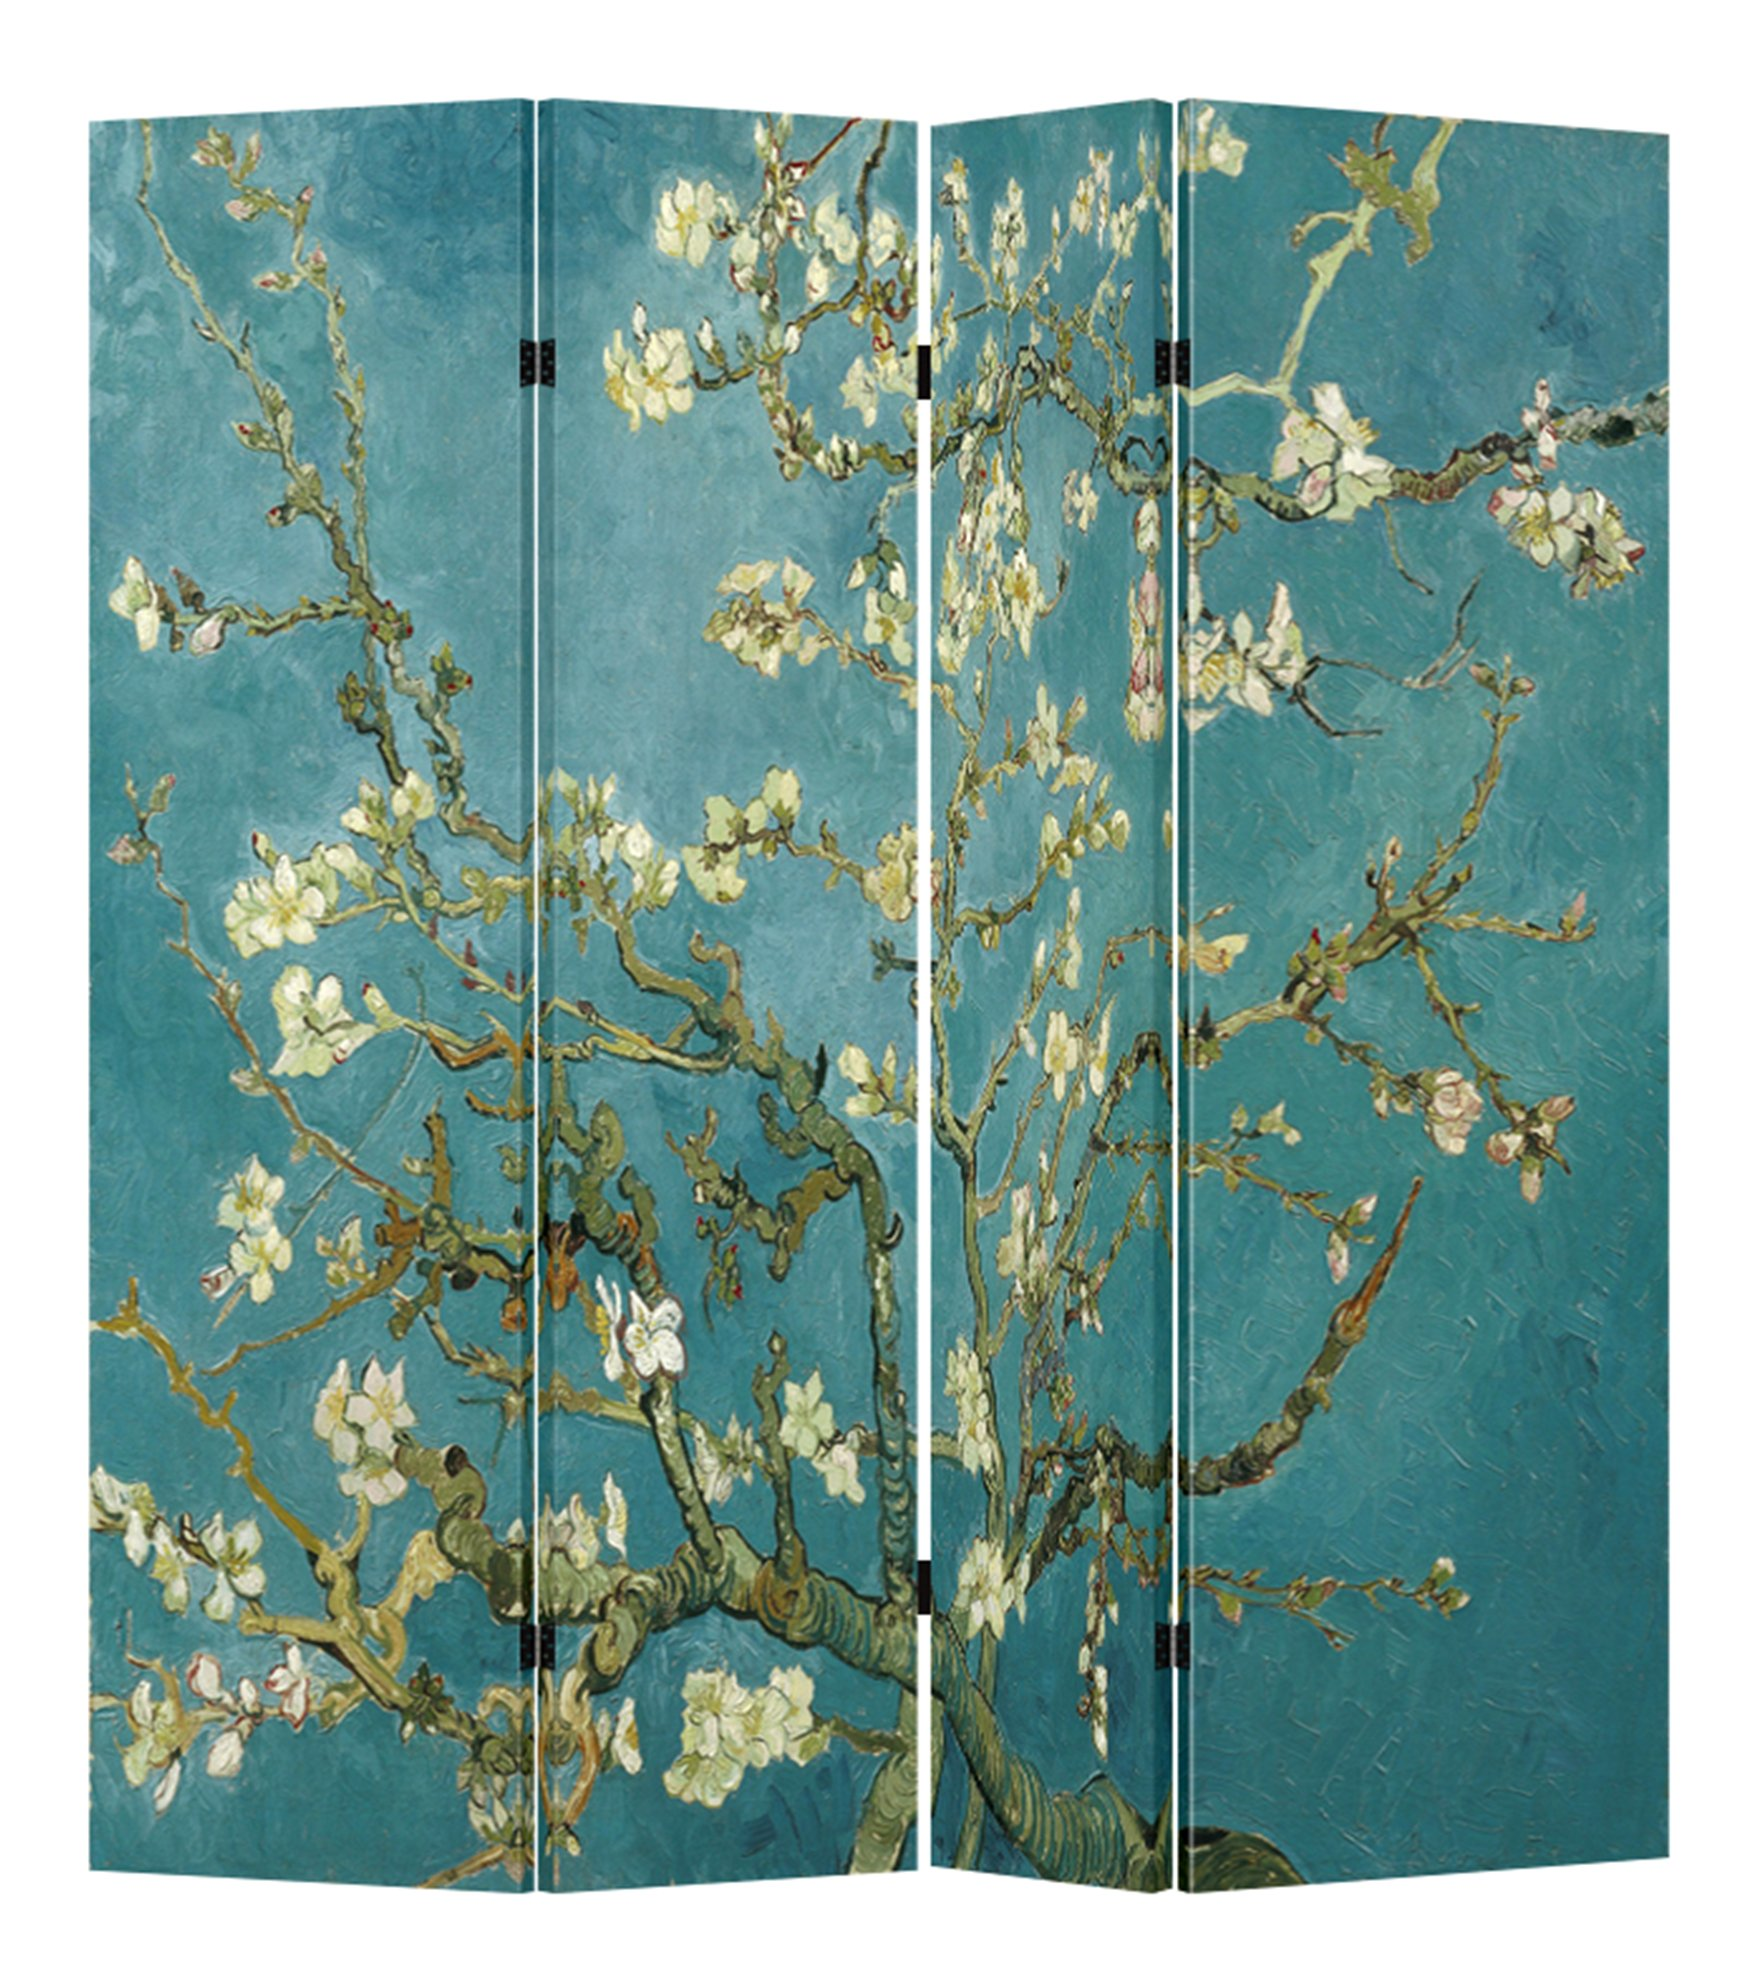 4 Panel (Original Teal Color) Wood Folding Screen Decorative Canvas Privacy Partition Room Divider - Vincent van Gogh's Almond Blossoms by Toa